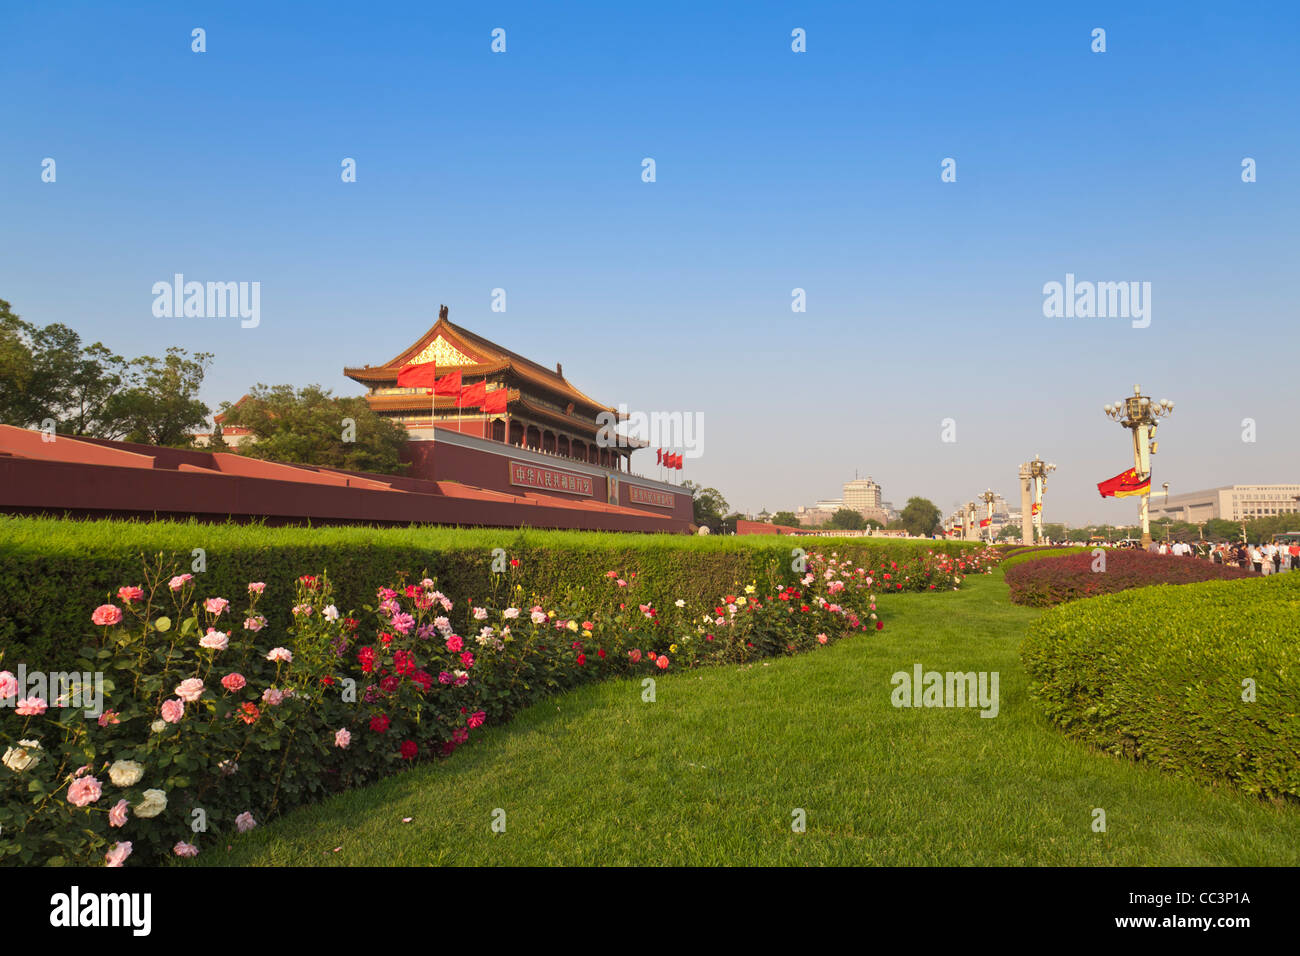 China, Beijing, Tiananmen Square, The Forbidden City. Gate of Heavenly Peace - Stock Image